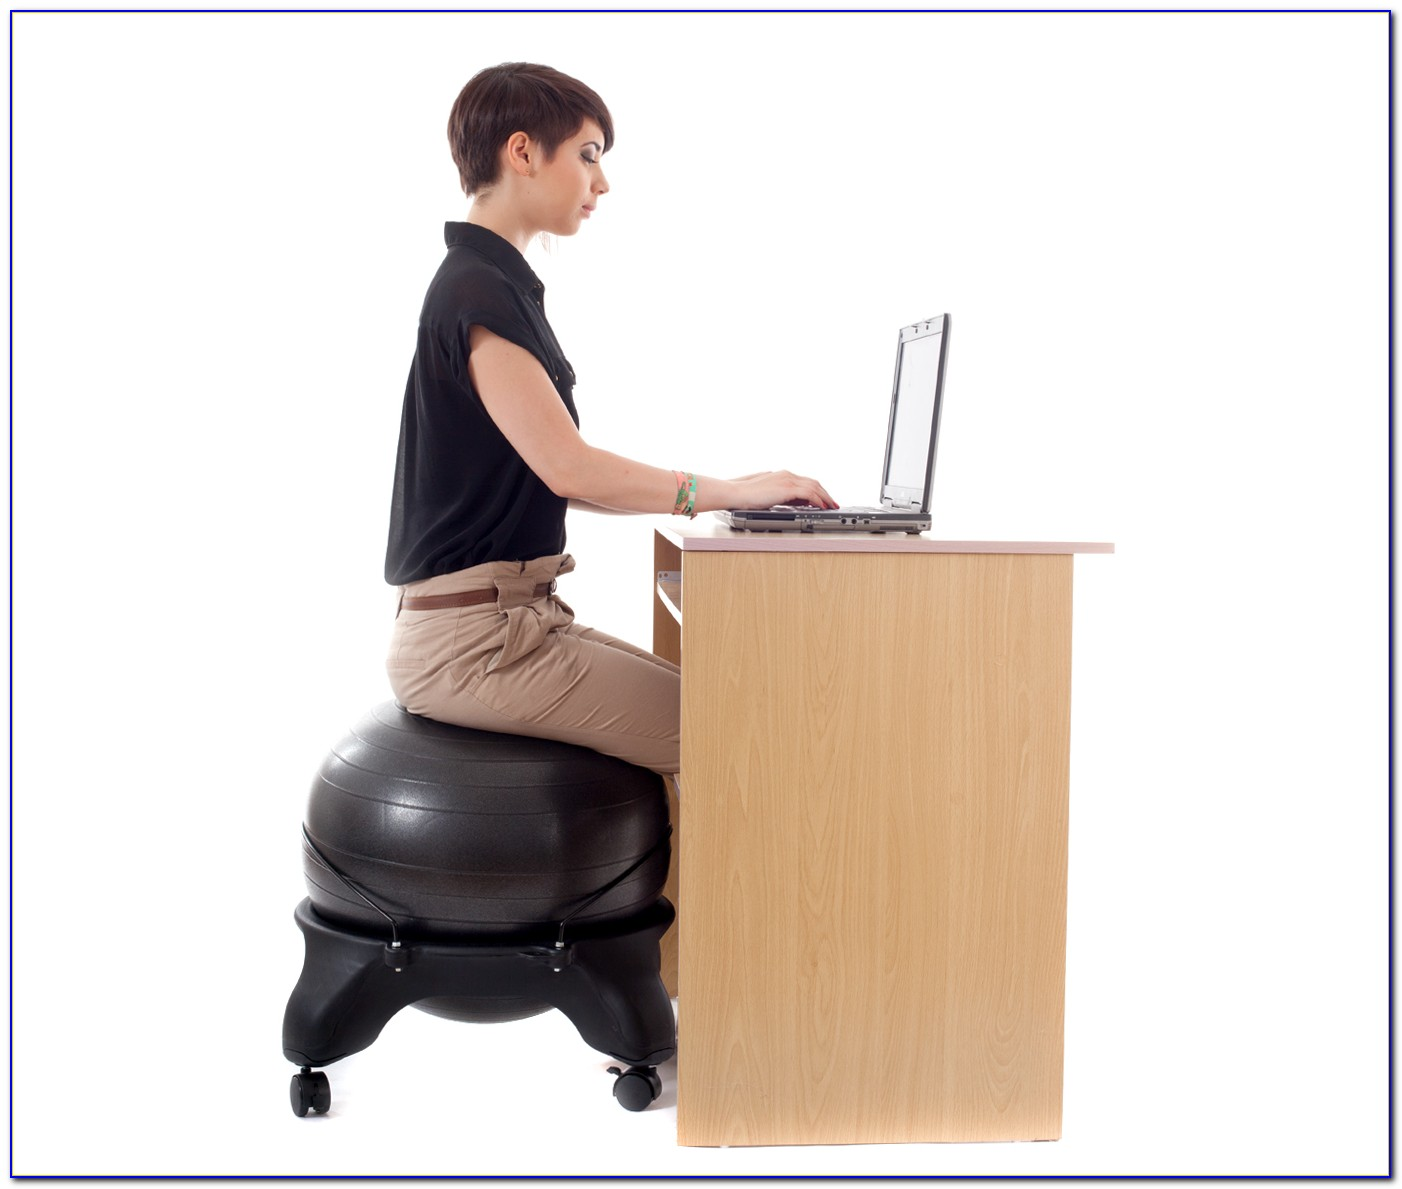 Exercise Ball Office Chair Size